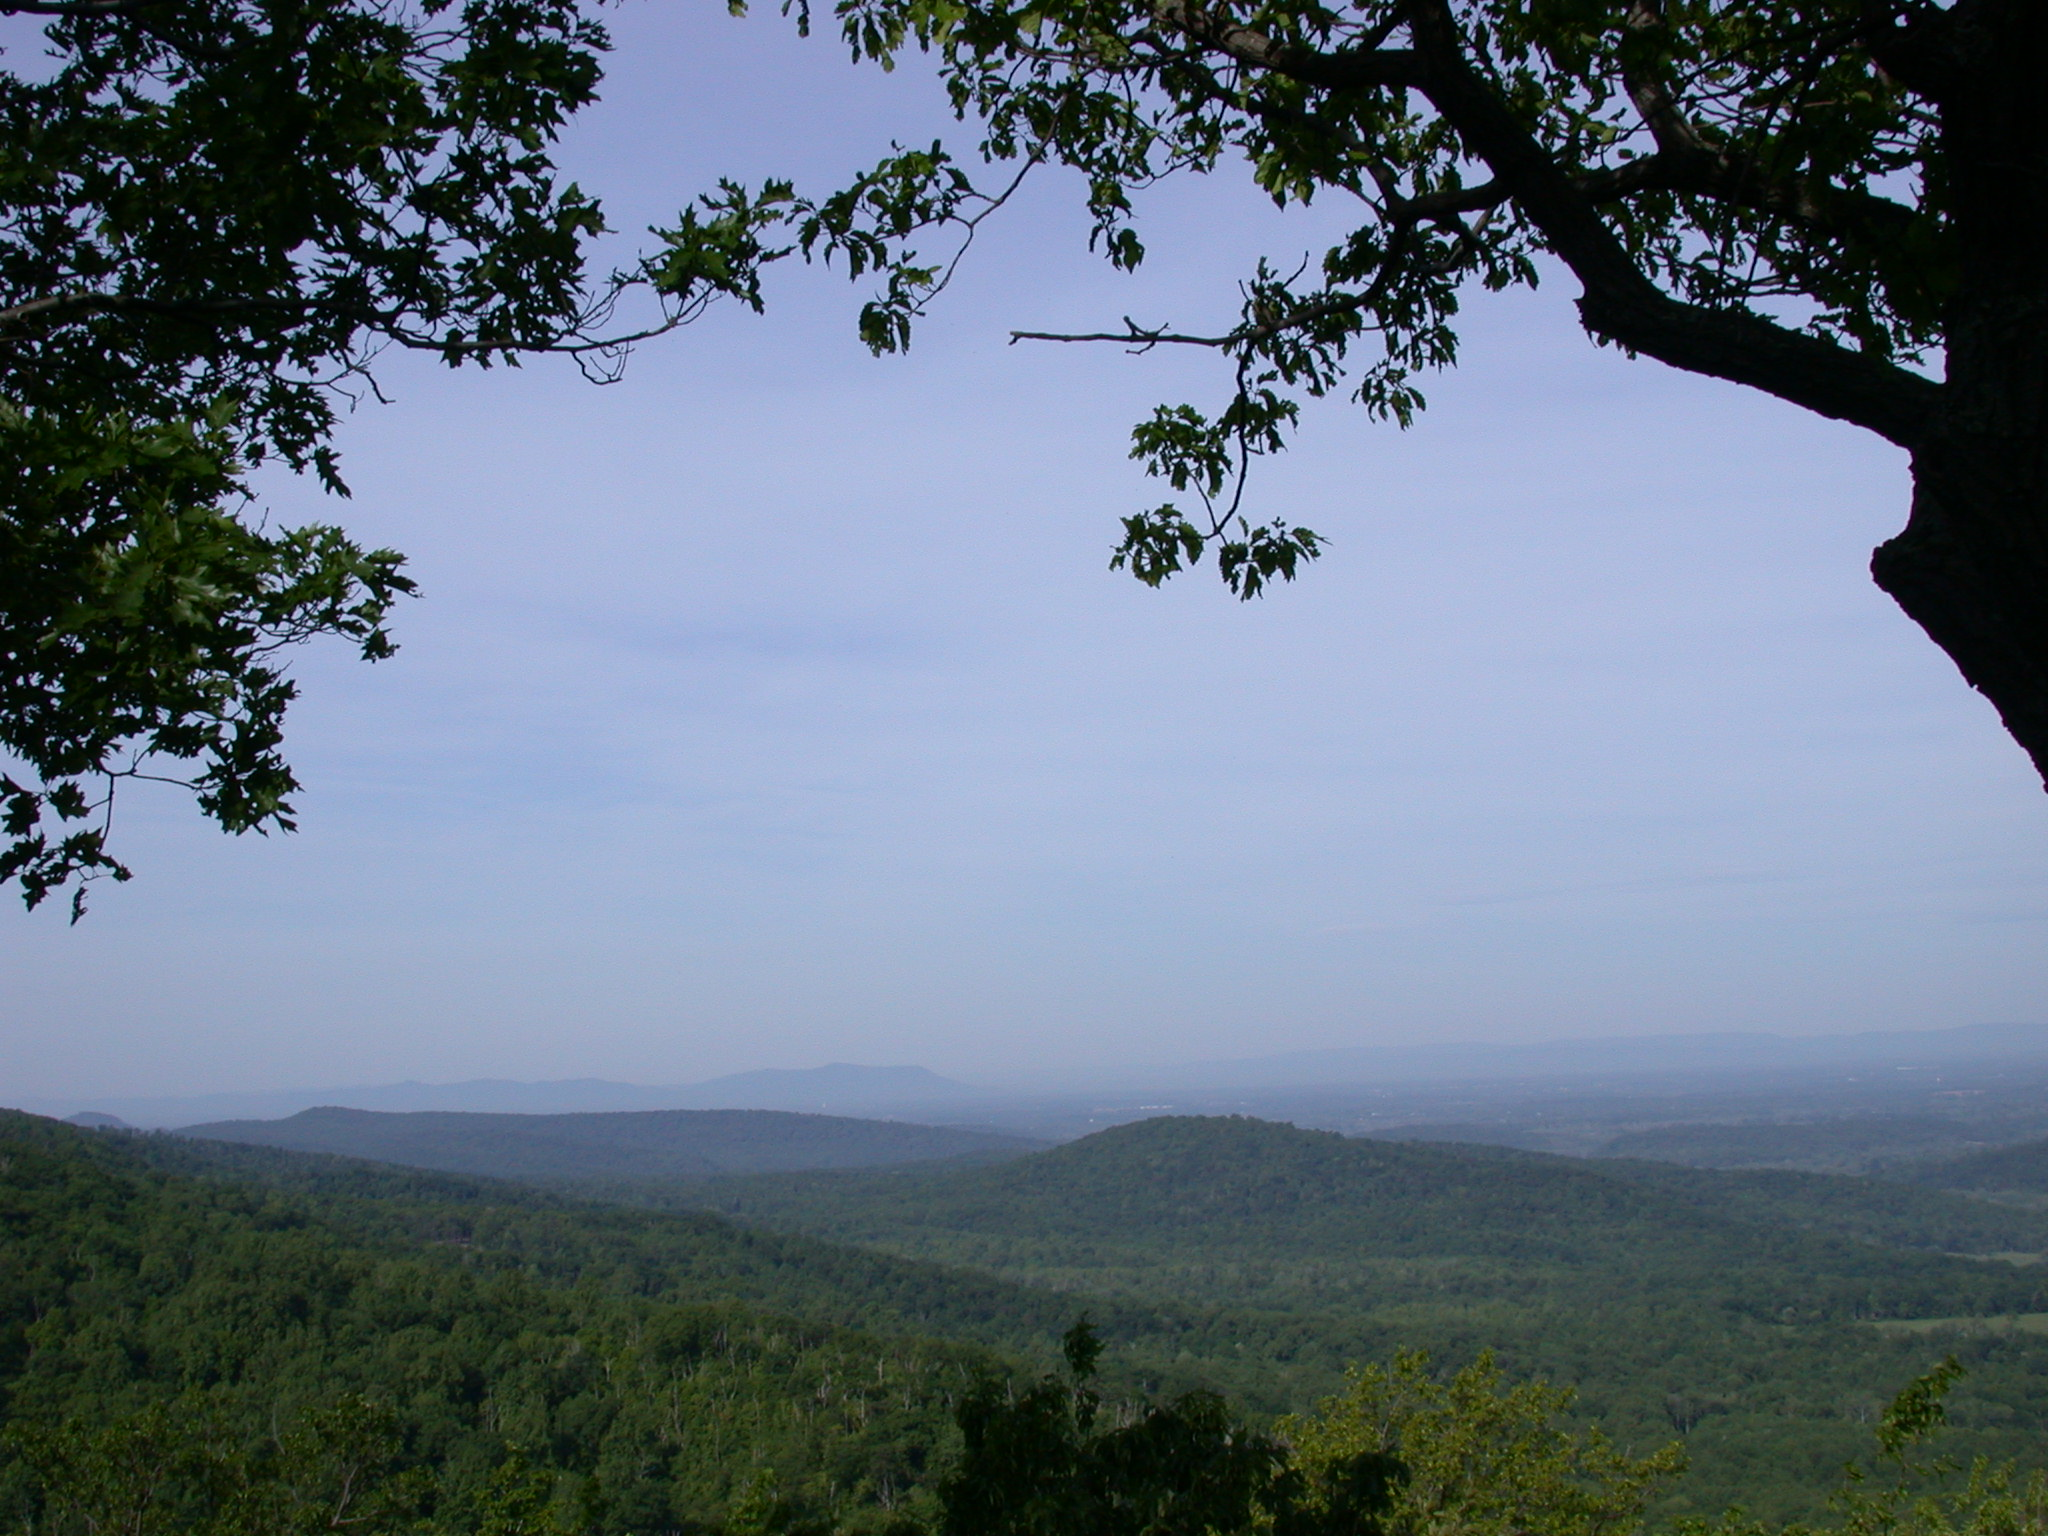 The Shenandoah Valley.